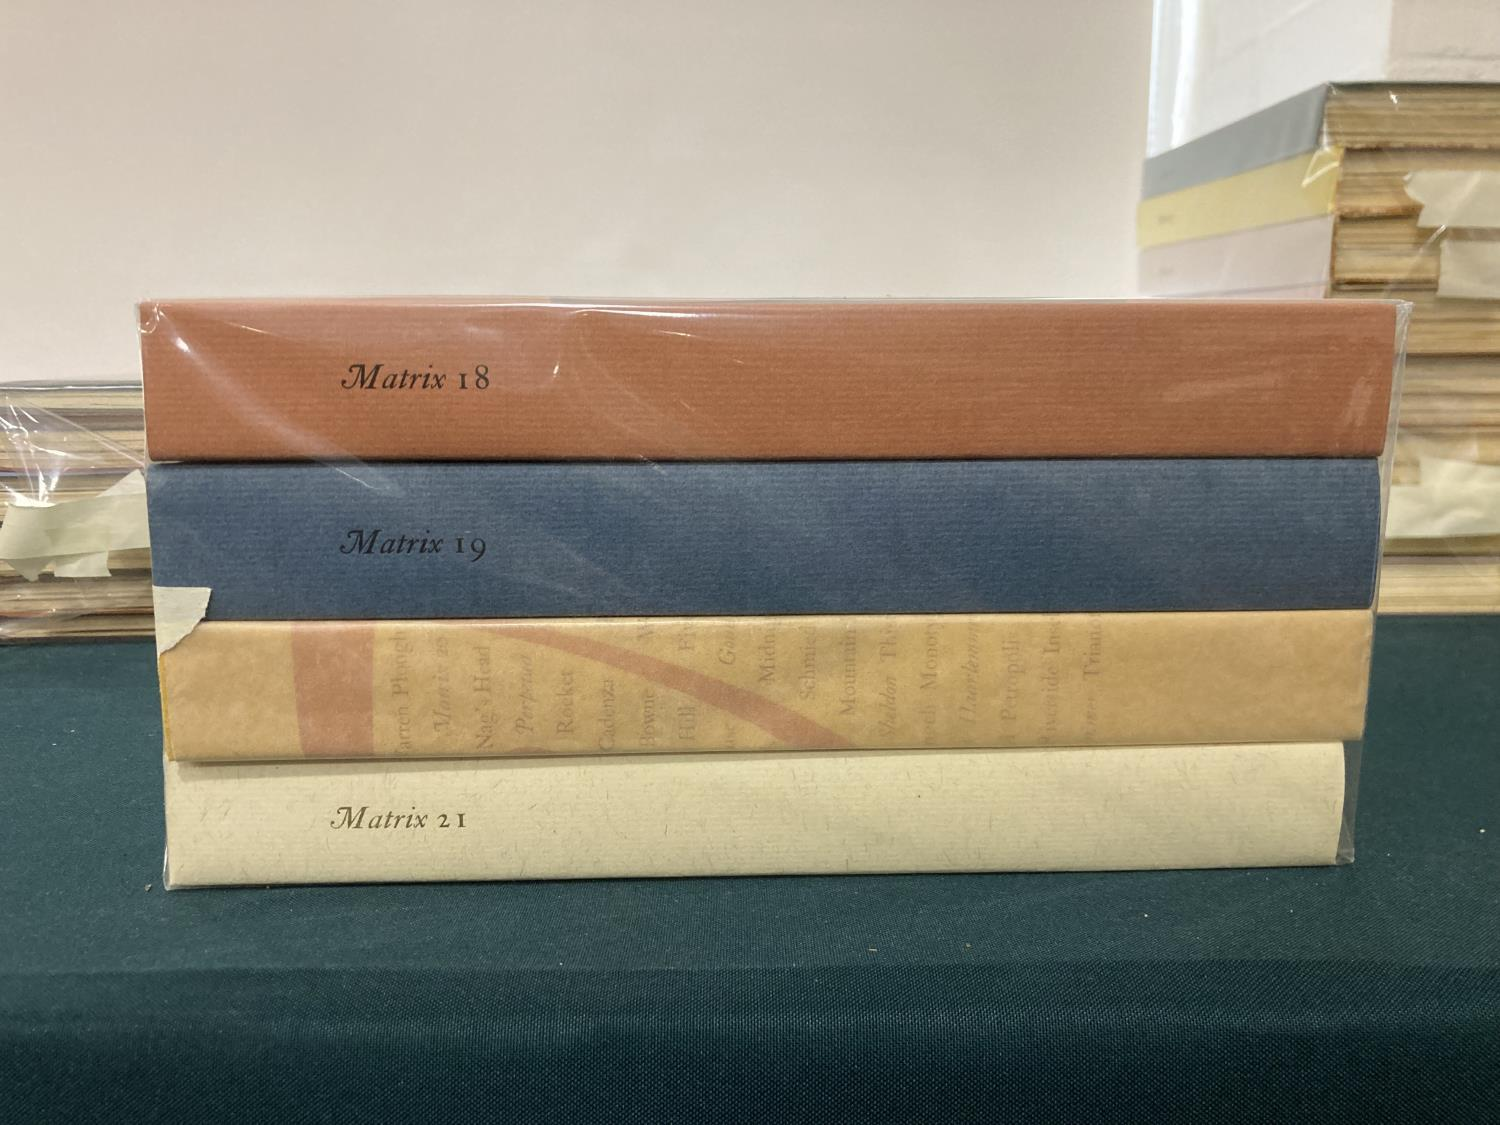 Randle, John and Rosalind, publishers. Matrix: A Review for Printers and Bibliophiles, volumes 1-21, - Image 3 of 4